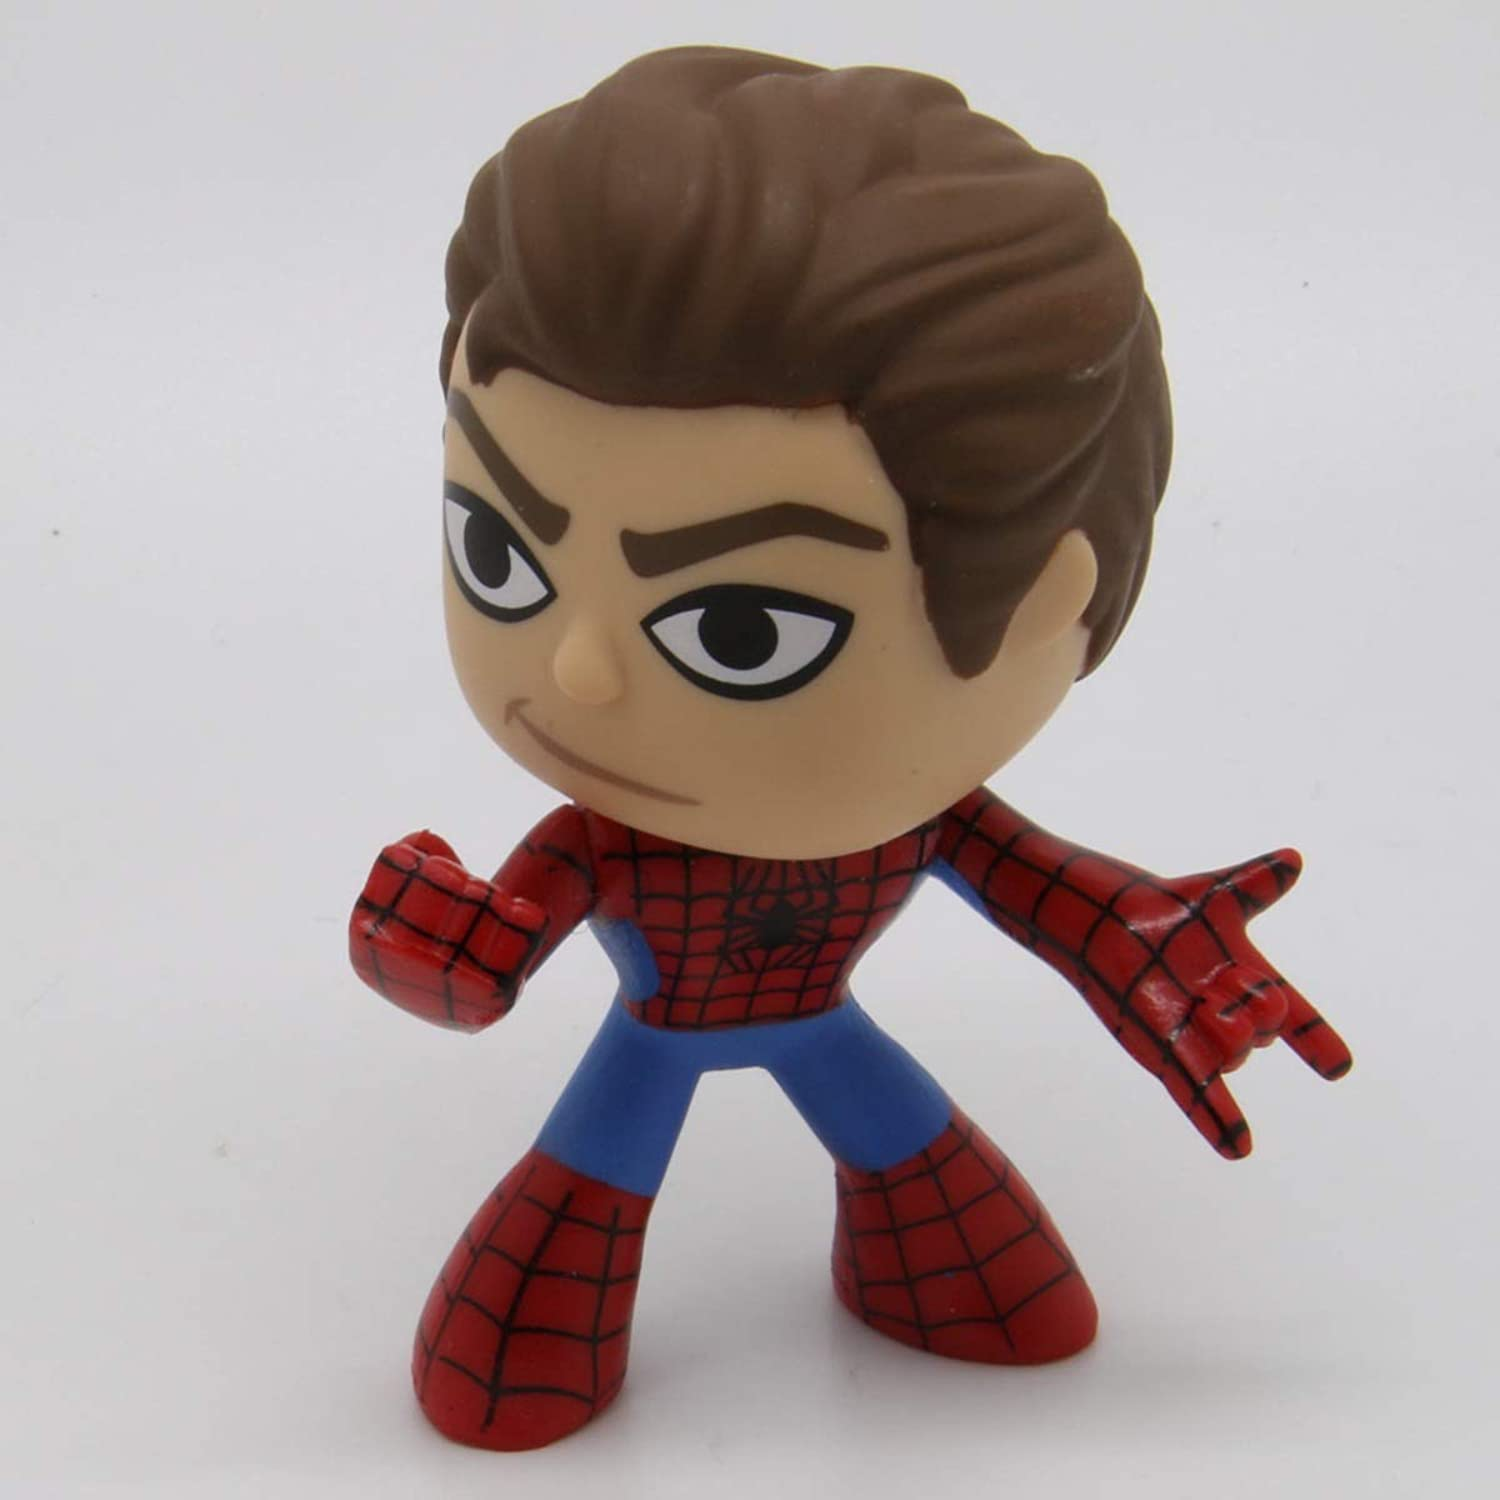 Altro divertimentoko Mystery Minis Marvel Spider-uomo - Spider-uomo Unmasked Exclusive Target 1 36